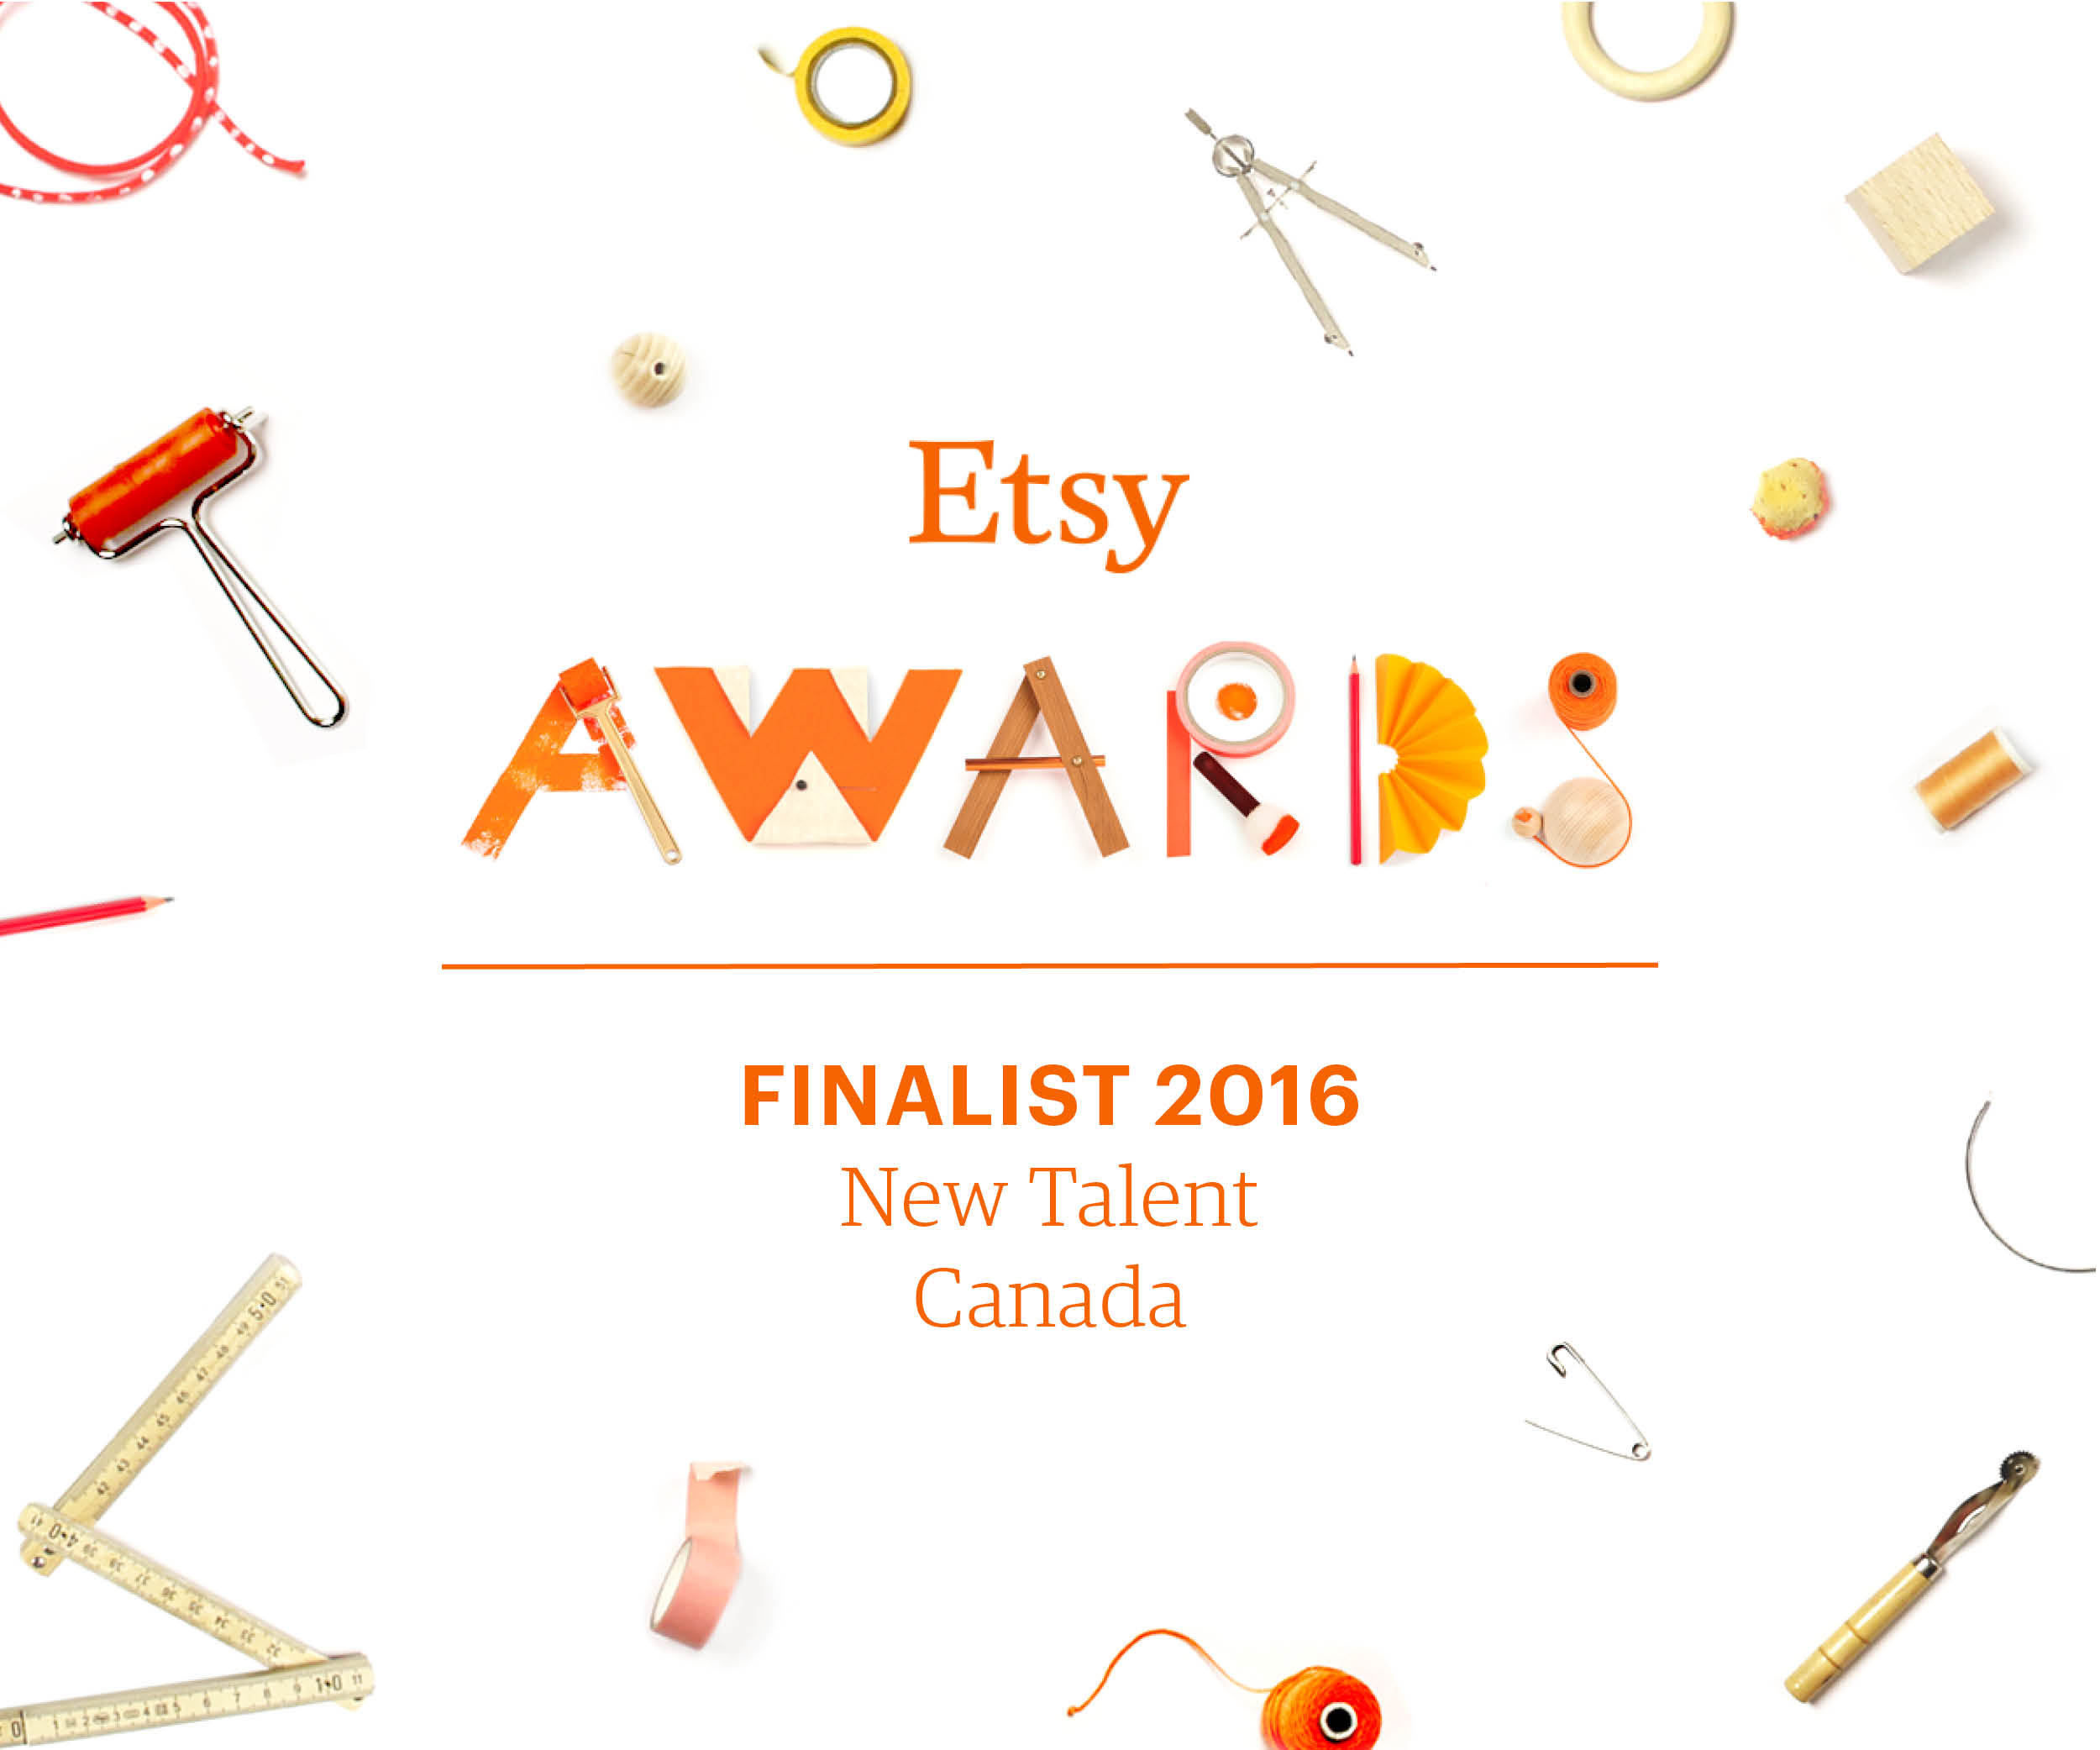 etsy awards finalist